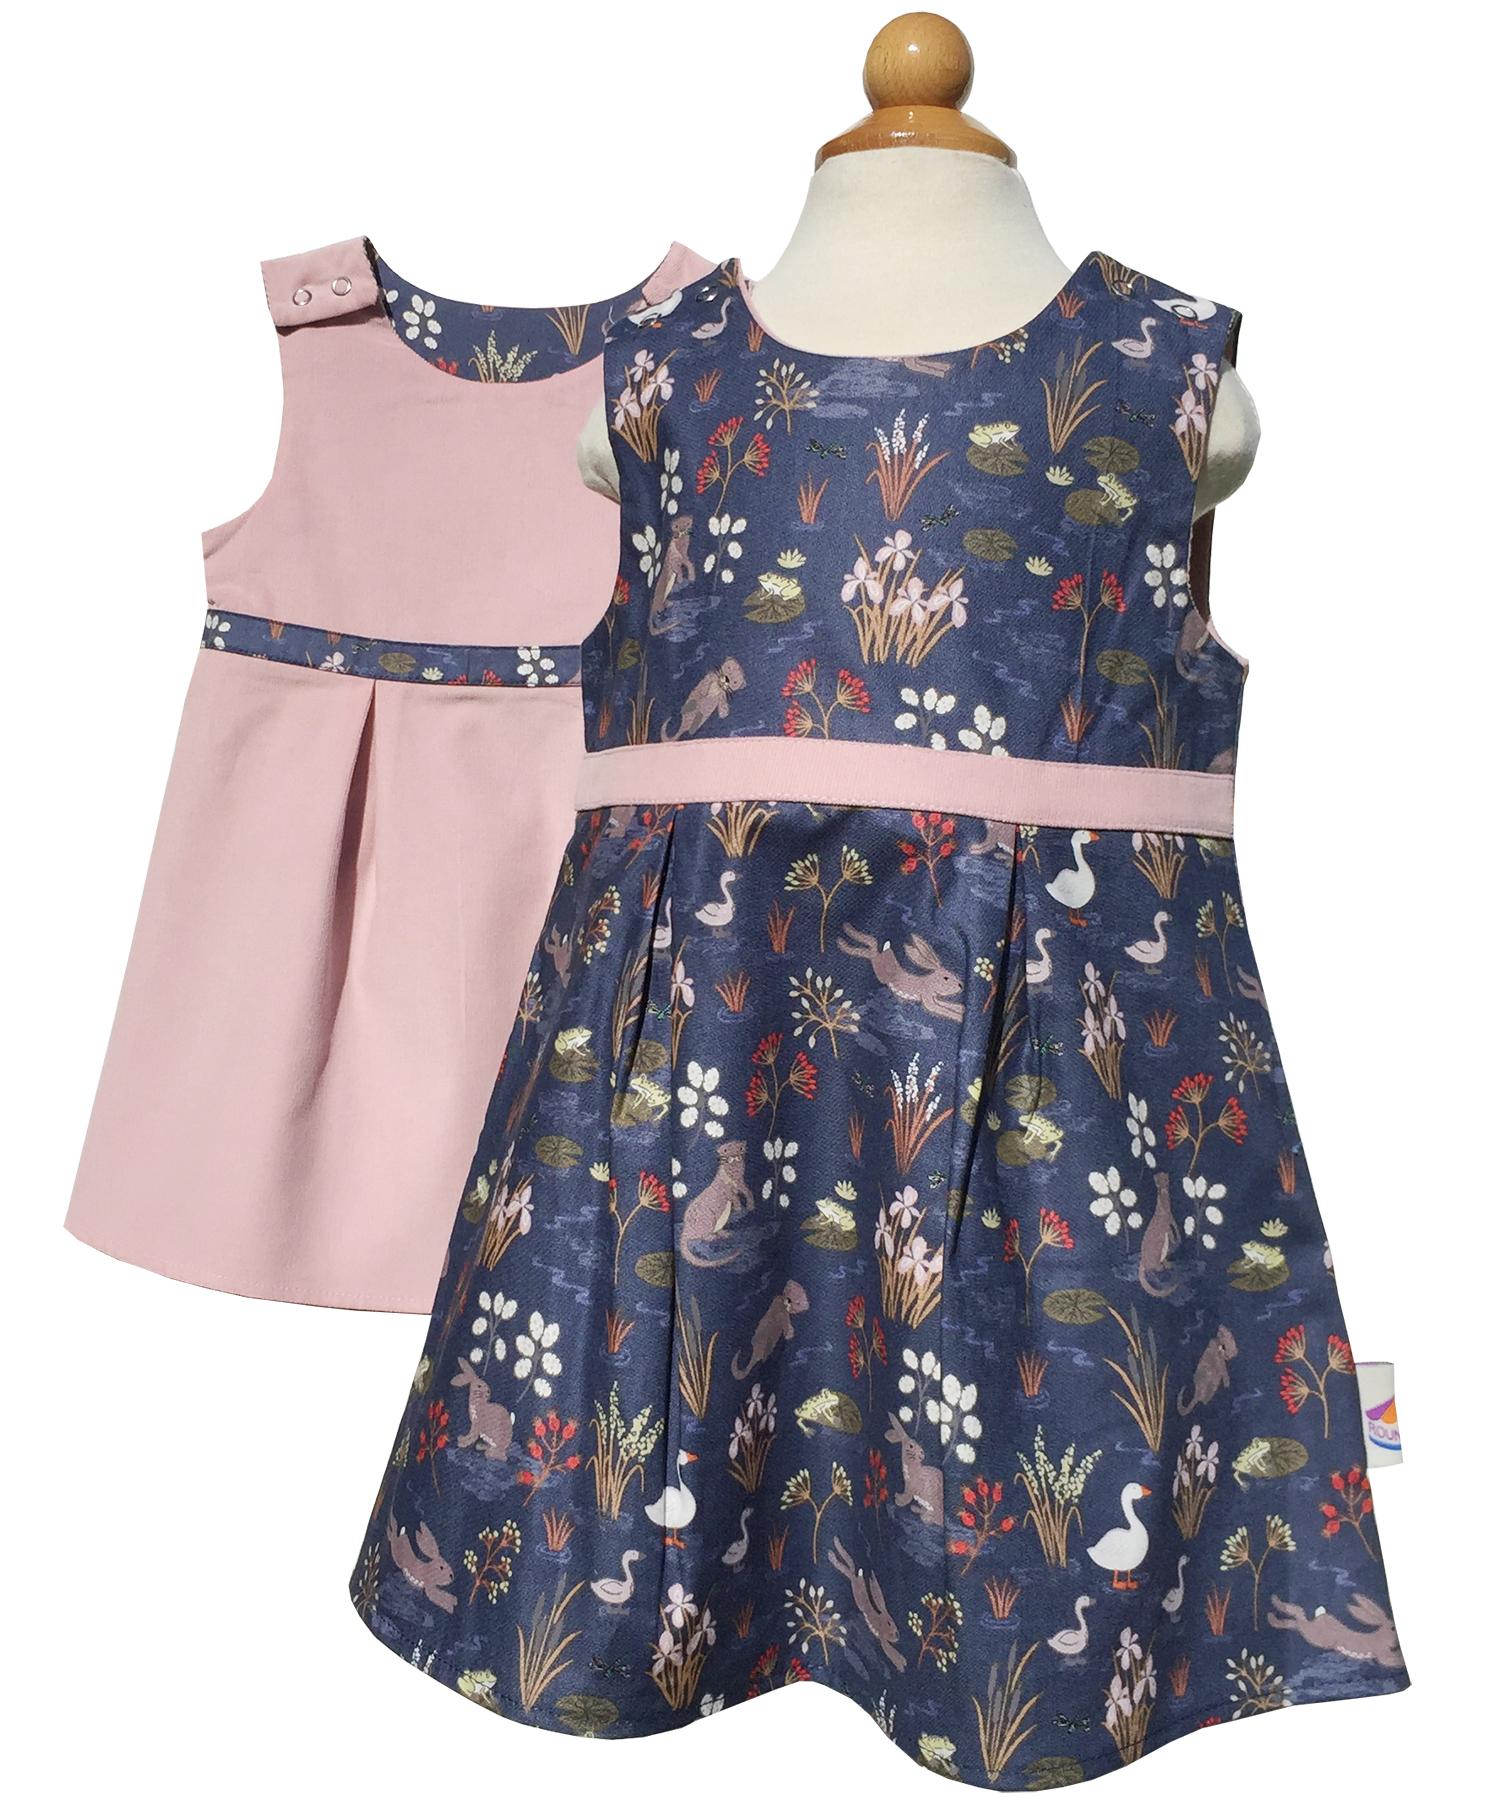 Reversible Lily Dress with powder pink corduroy